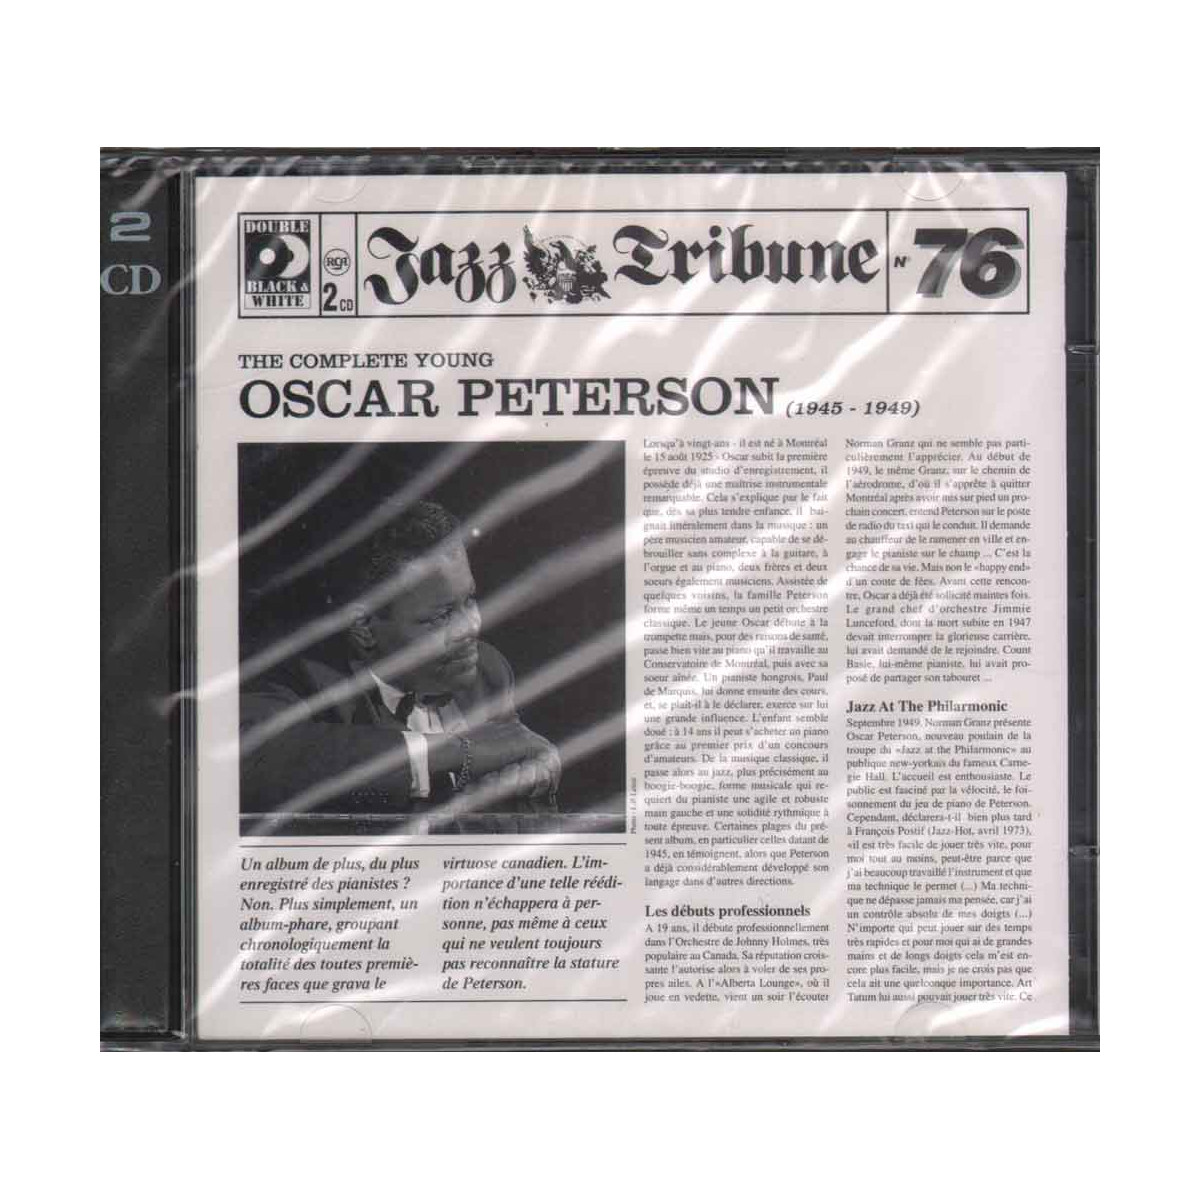 Oscar Peterson 2 CD The Complete Young (1945 - 1949) Sigillato 0743212261226